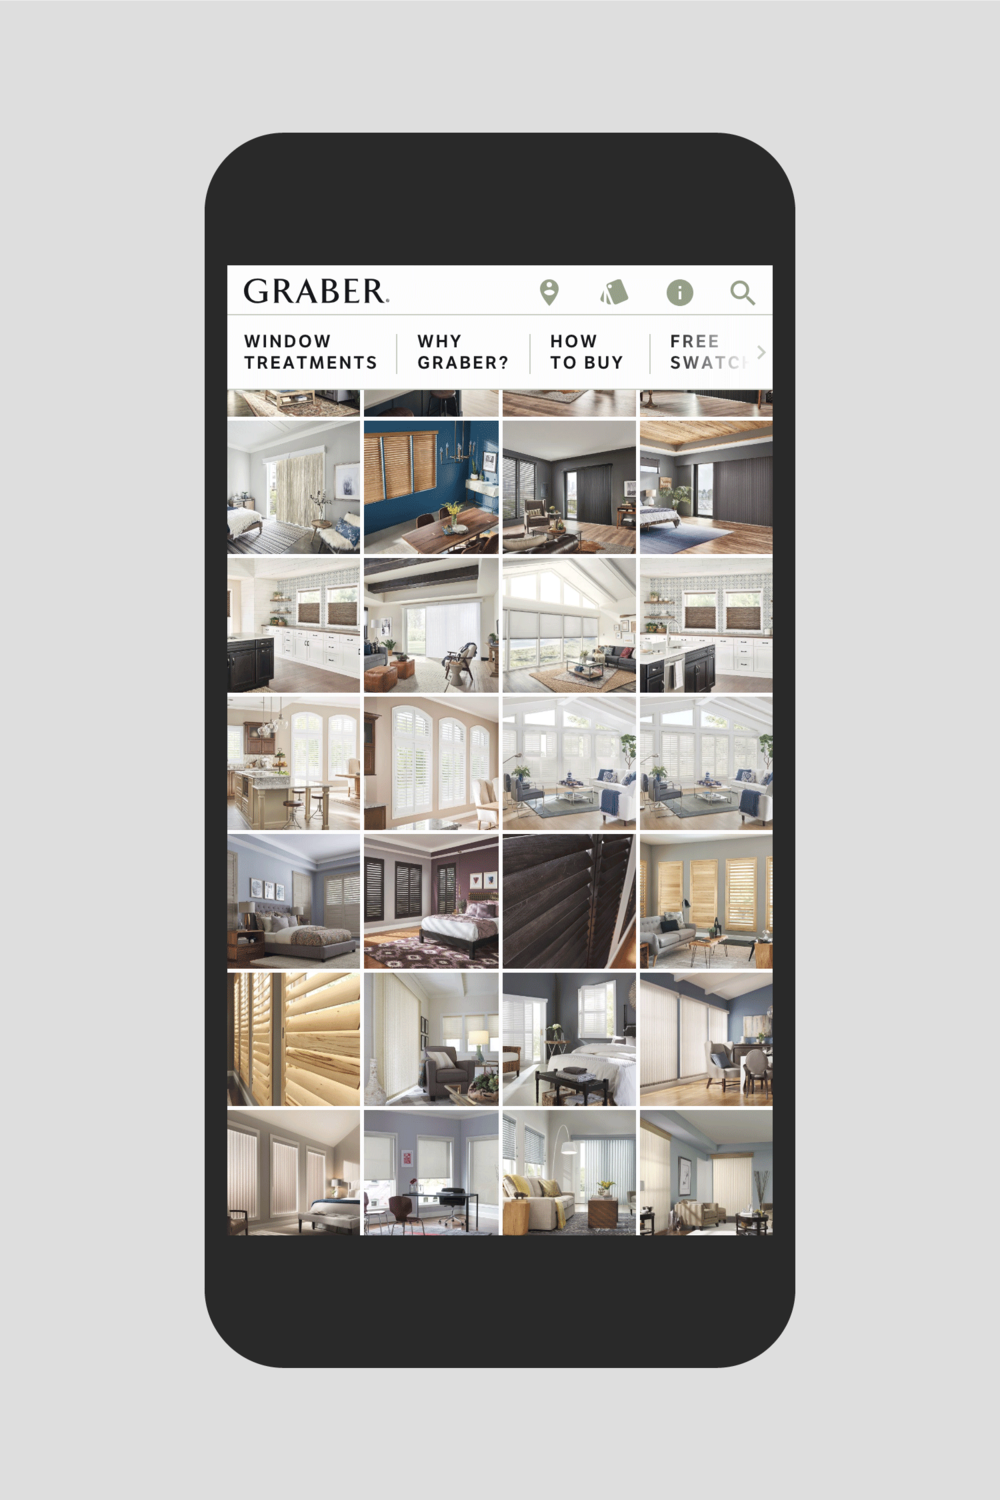 Graberblinds.com photo gallery